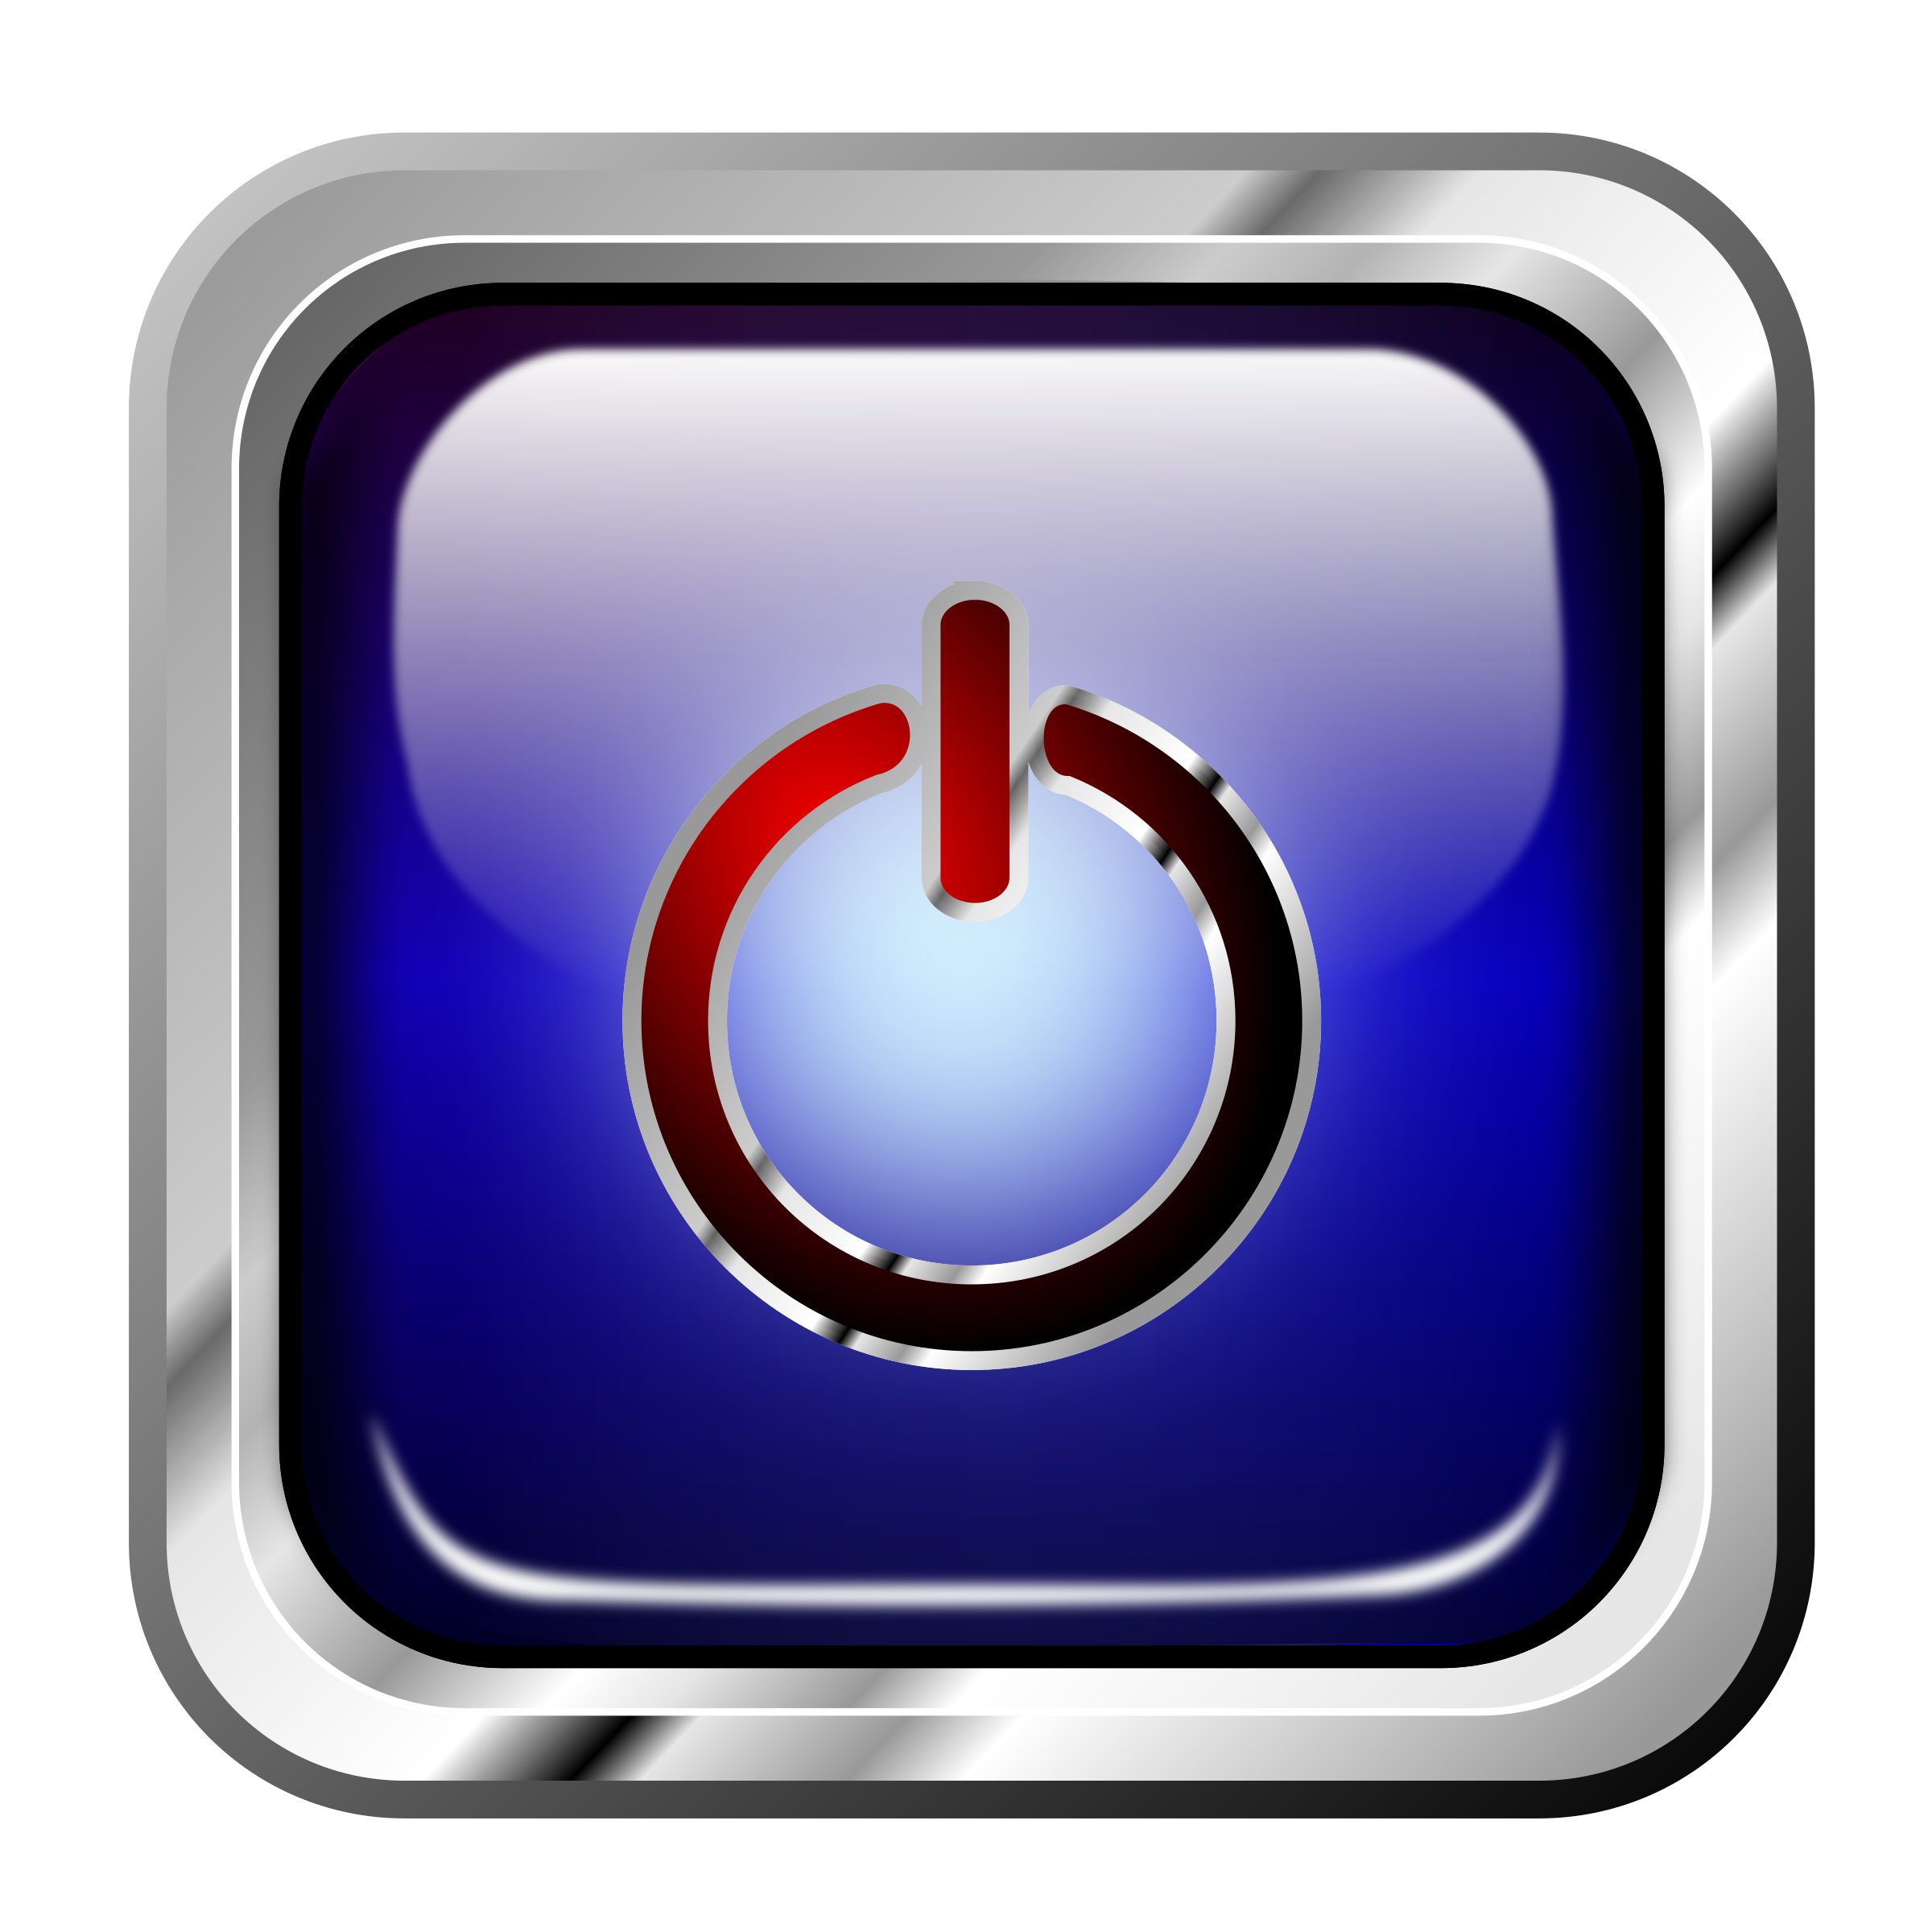 Icon Blue Mutimedia Power by roshellin